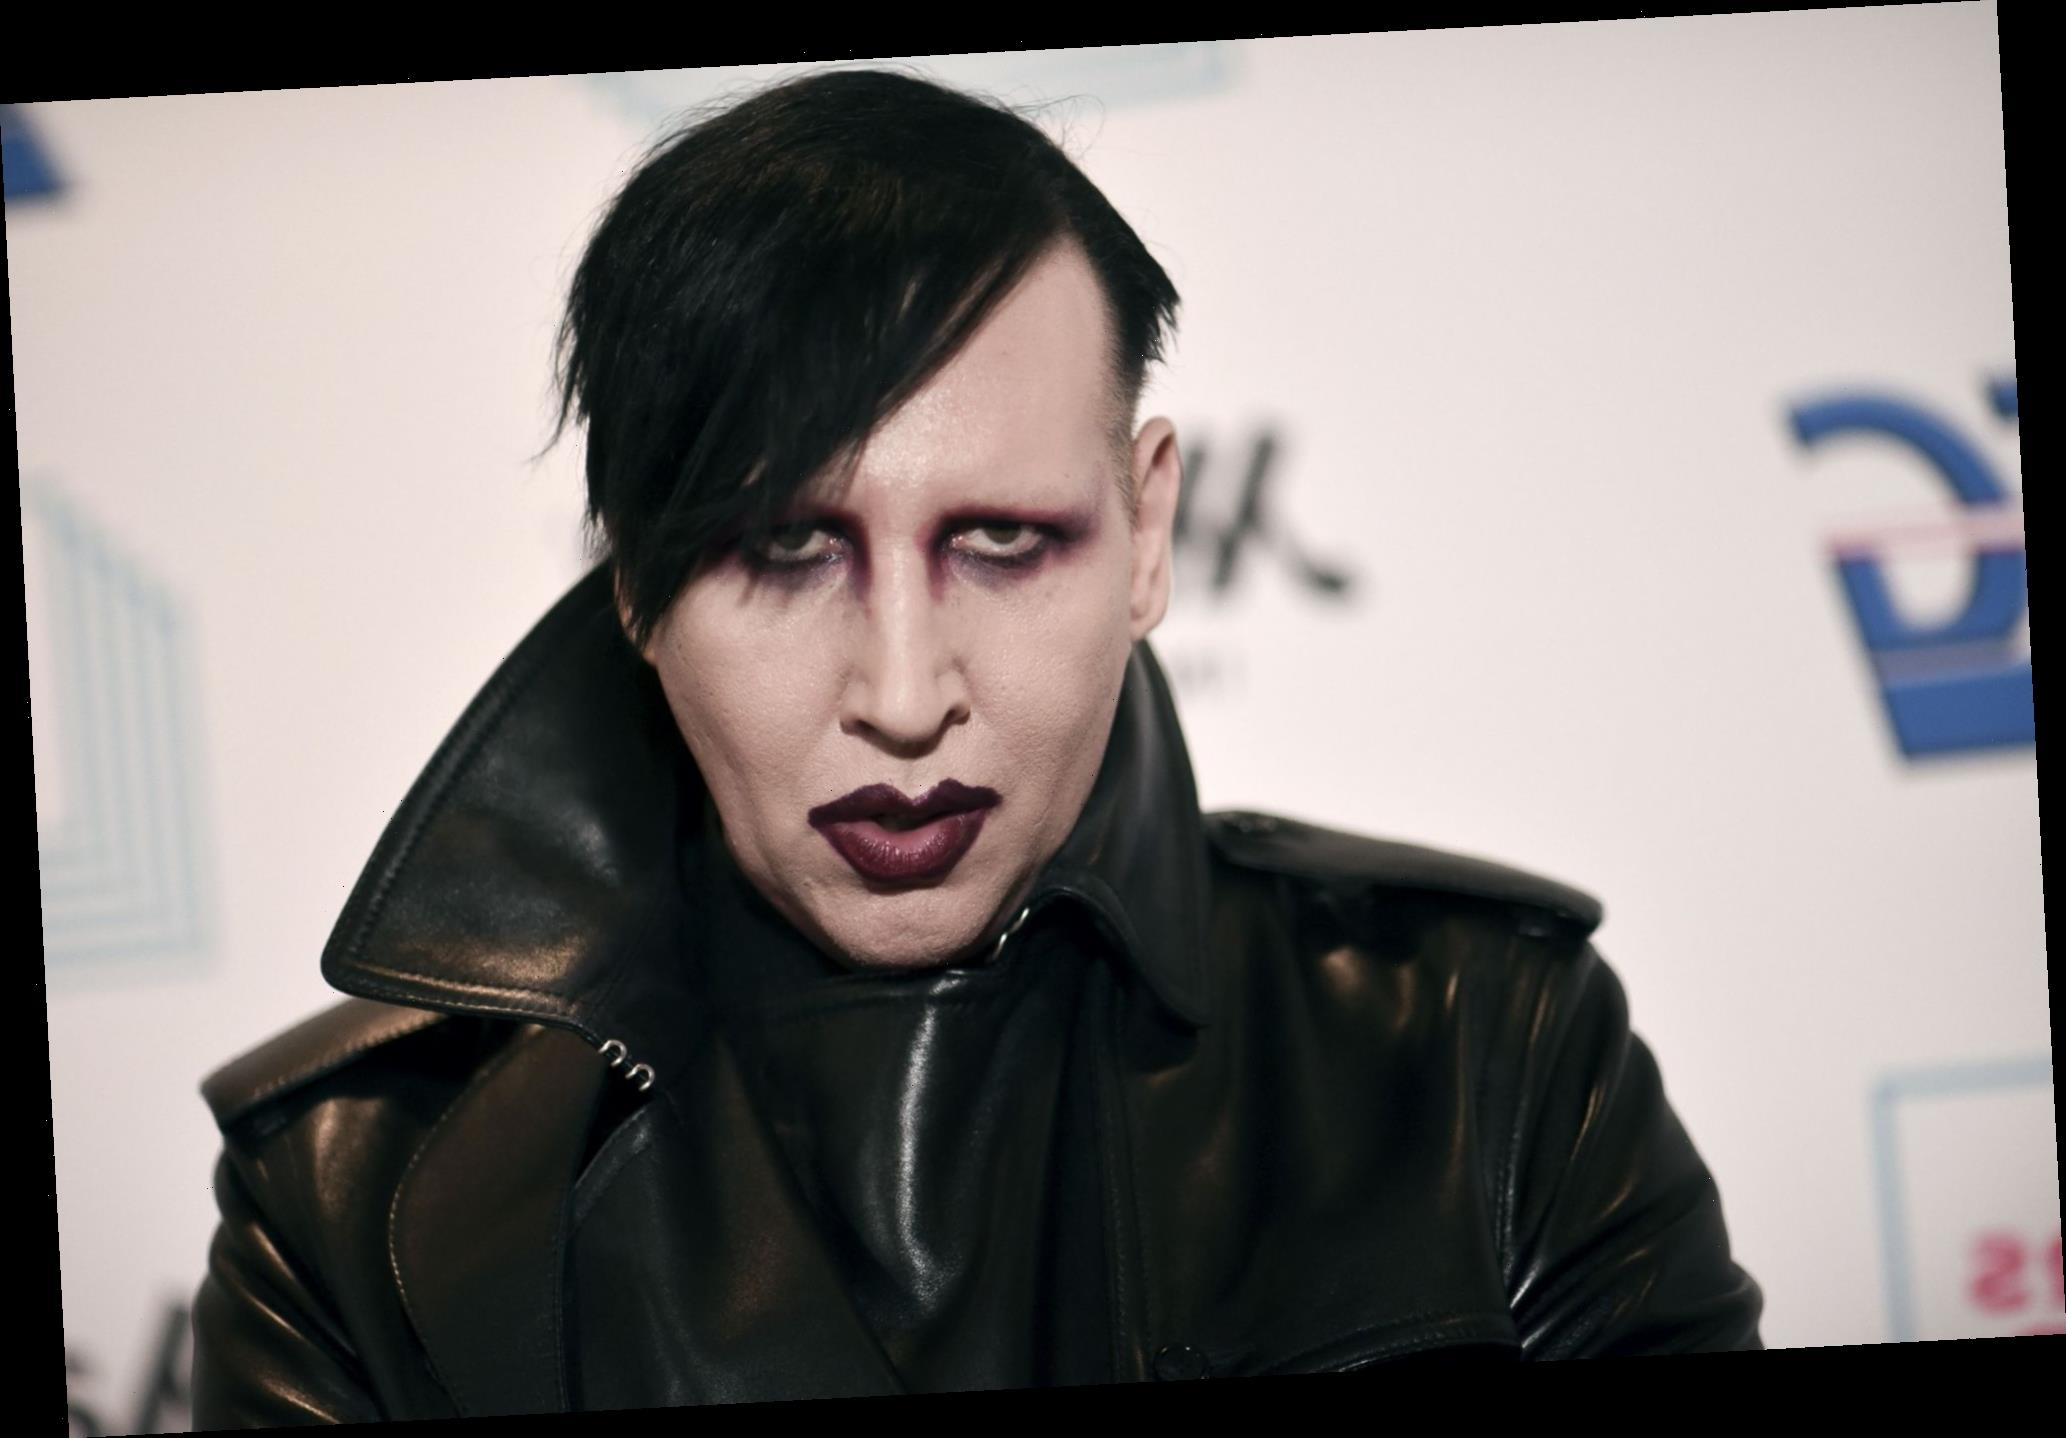 Marilyn Manson denies Evan Rachel Wood's abuse allegations